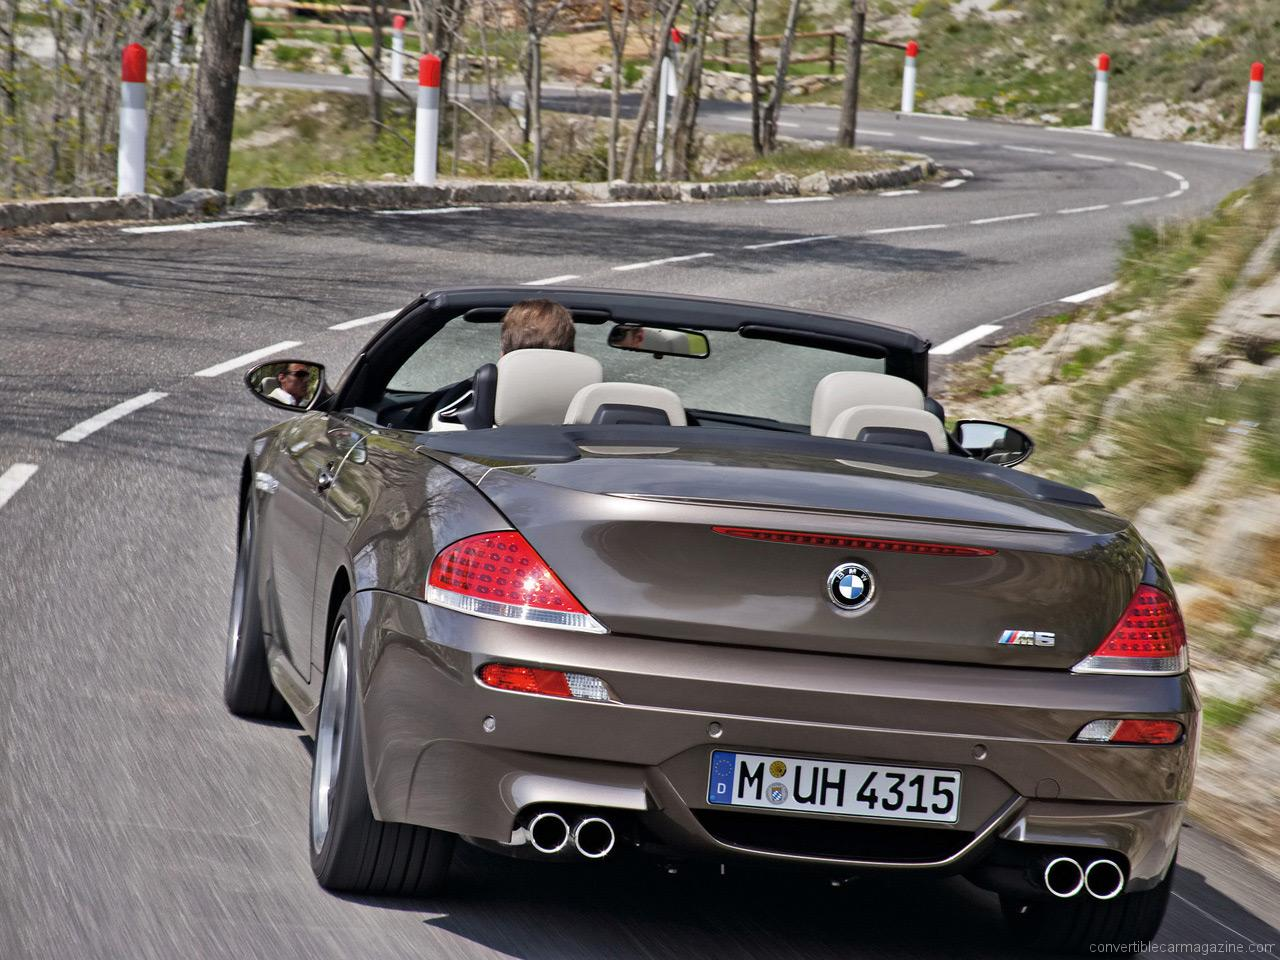 BMW M Convertible Buying Guide - 2011 bmw m6